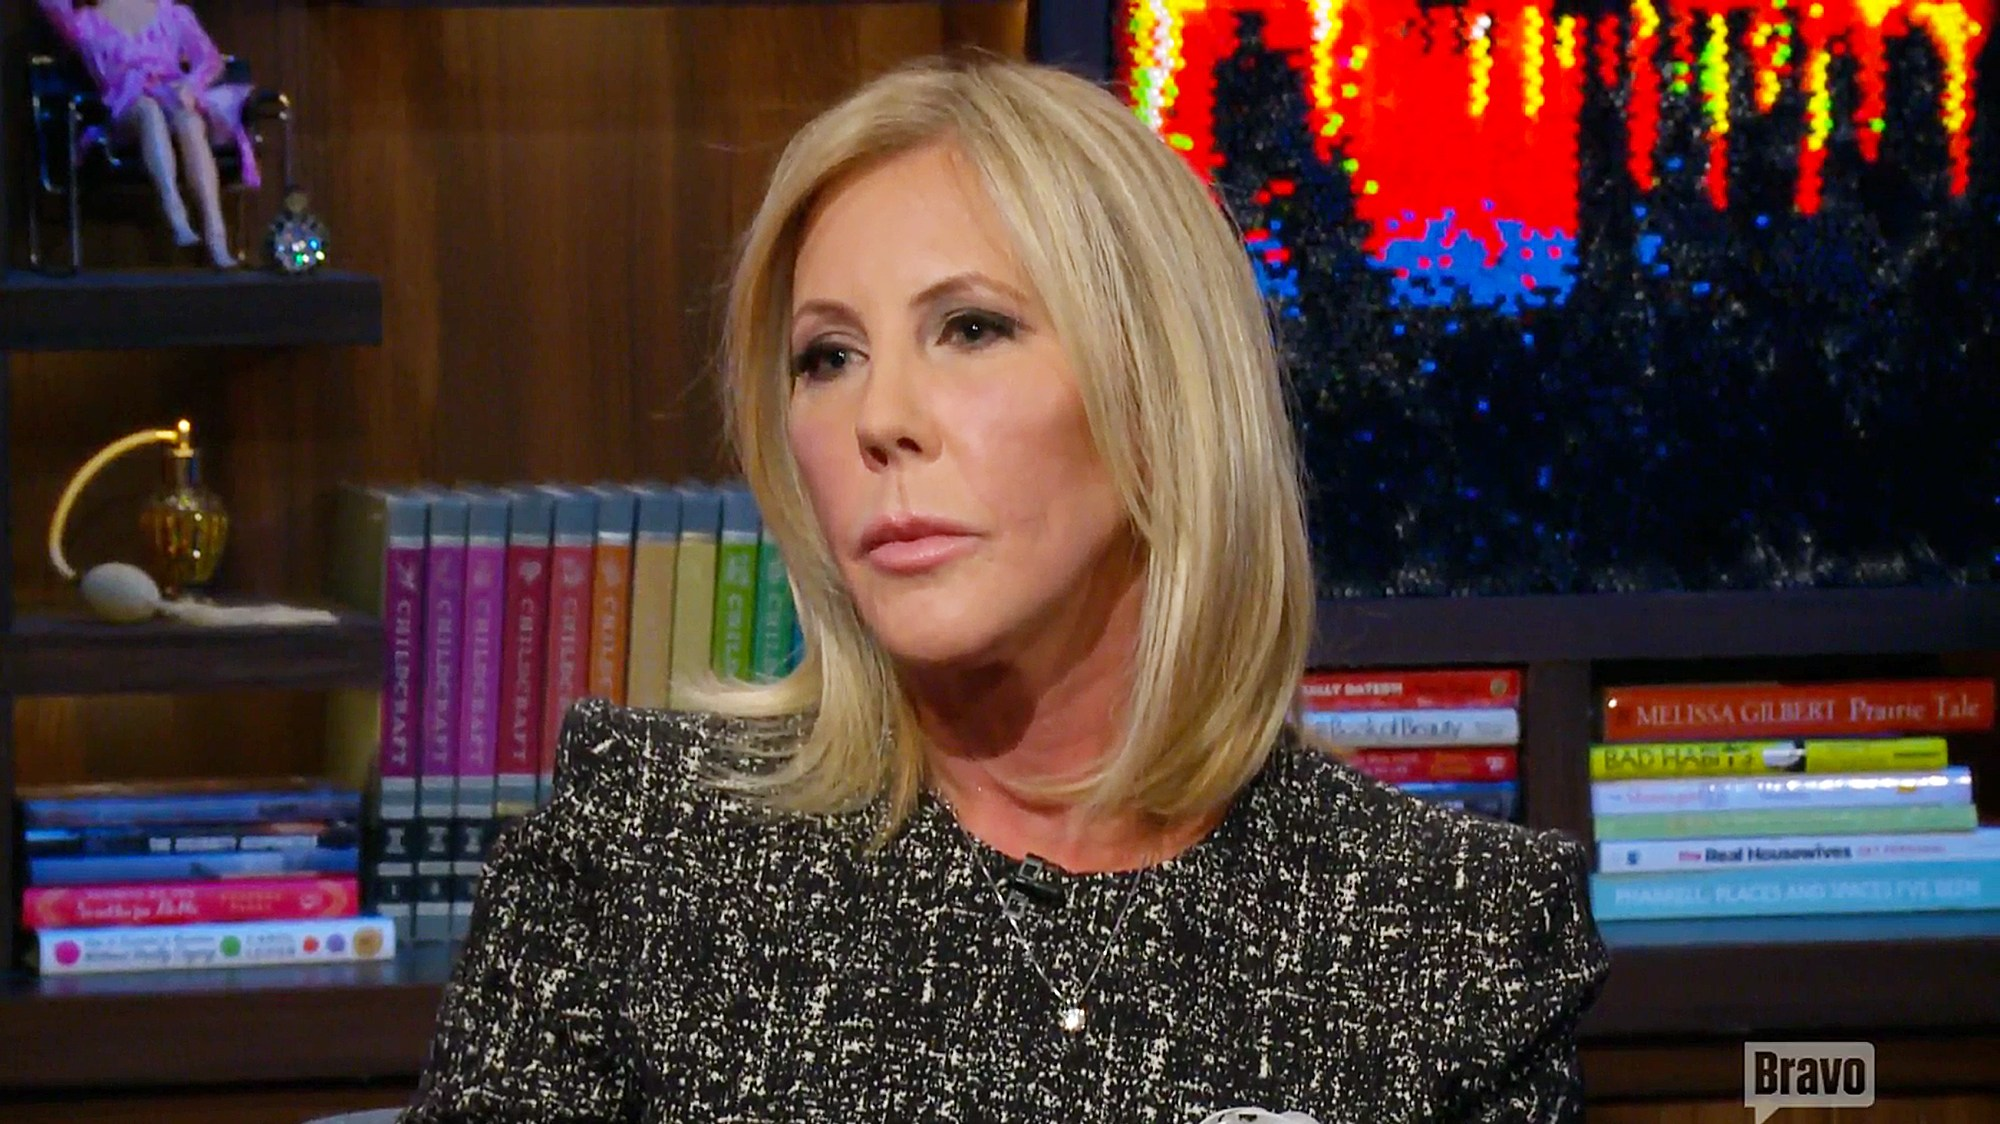 Vicki Gunvalson on Watch What Happens Live